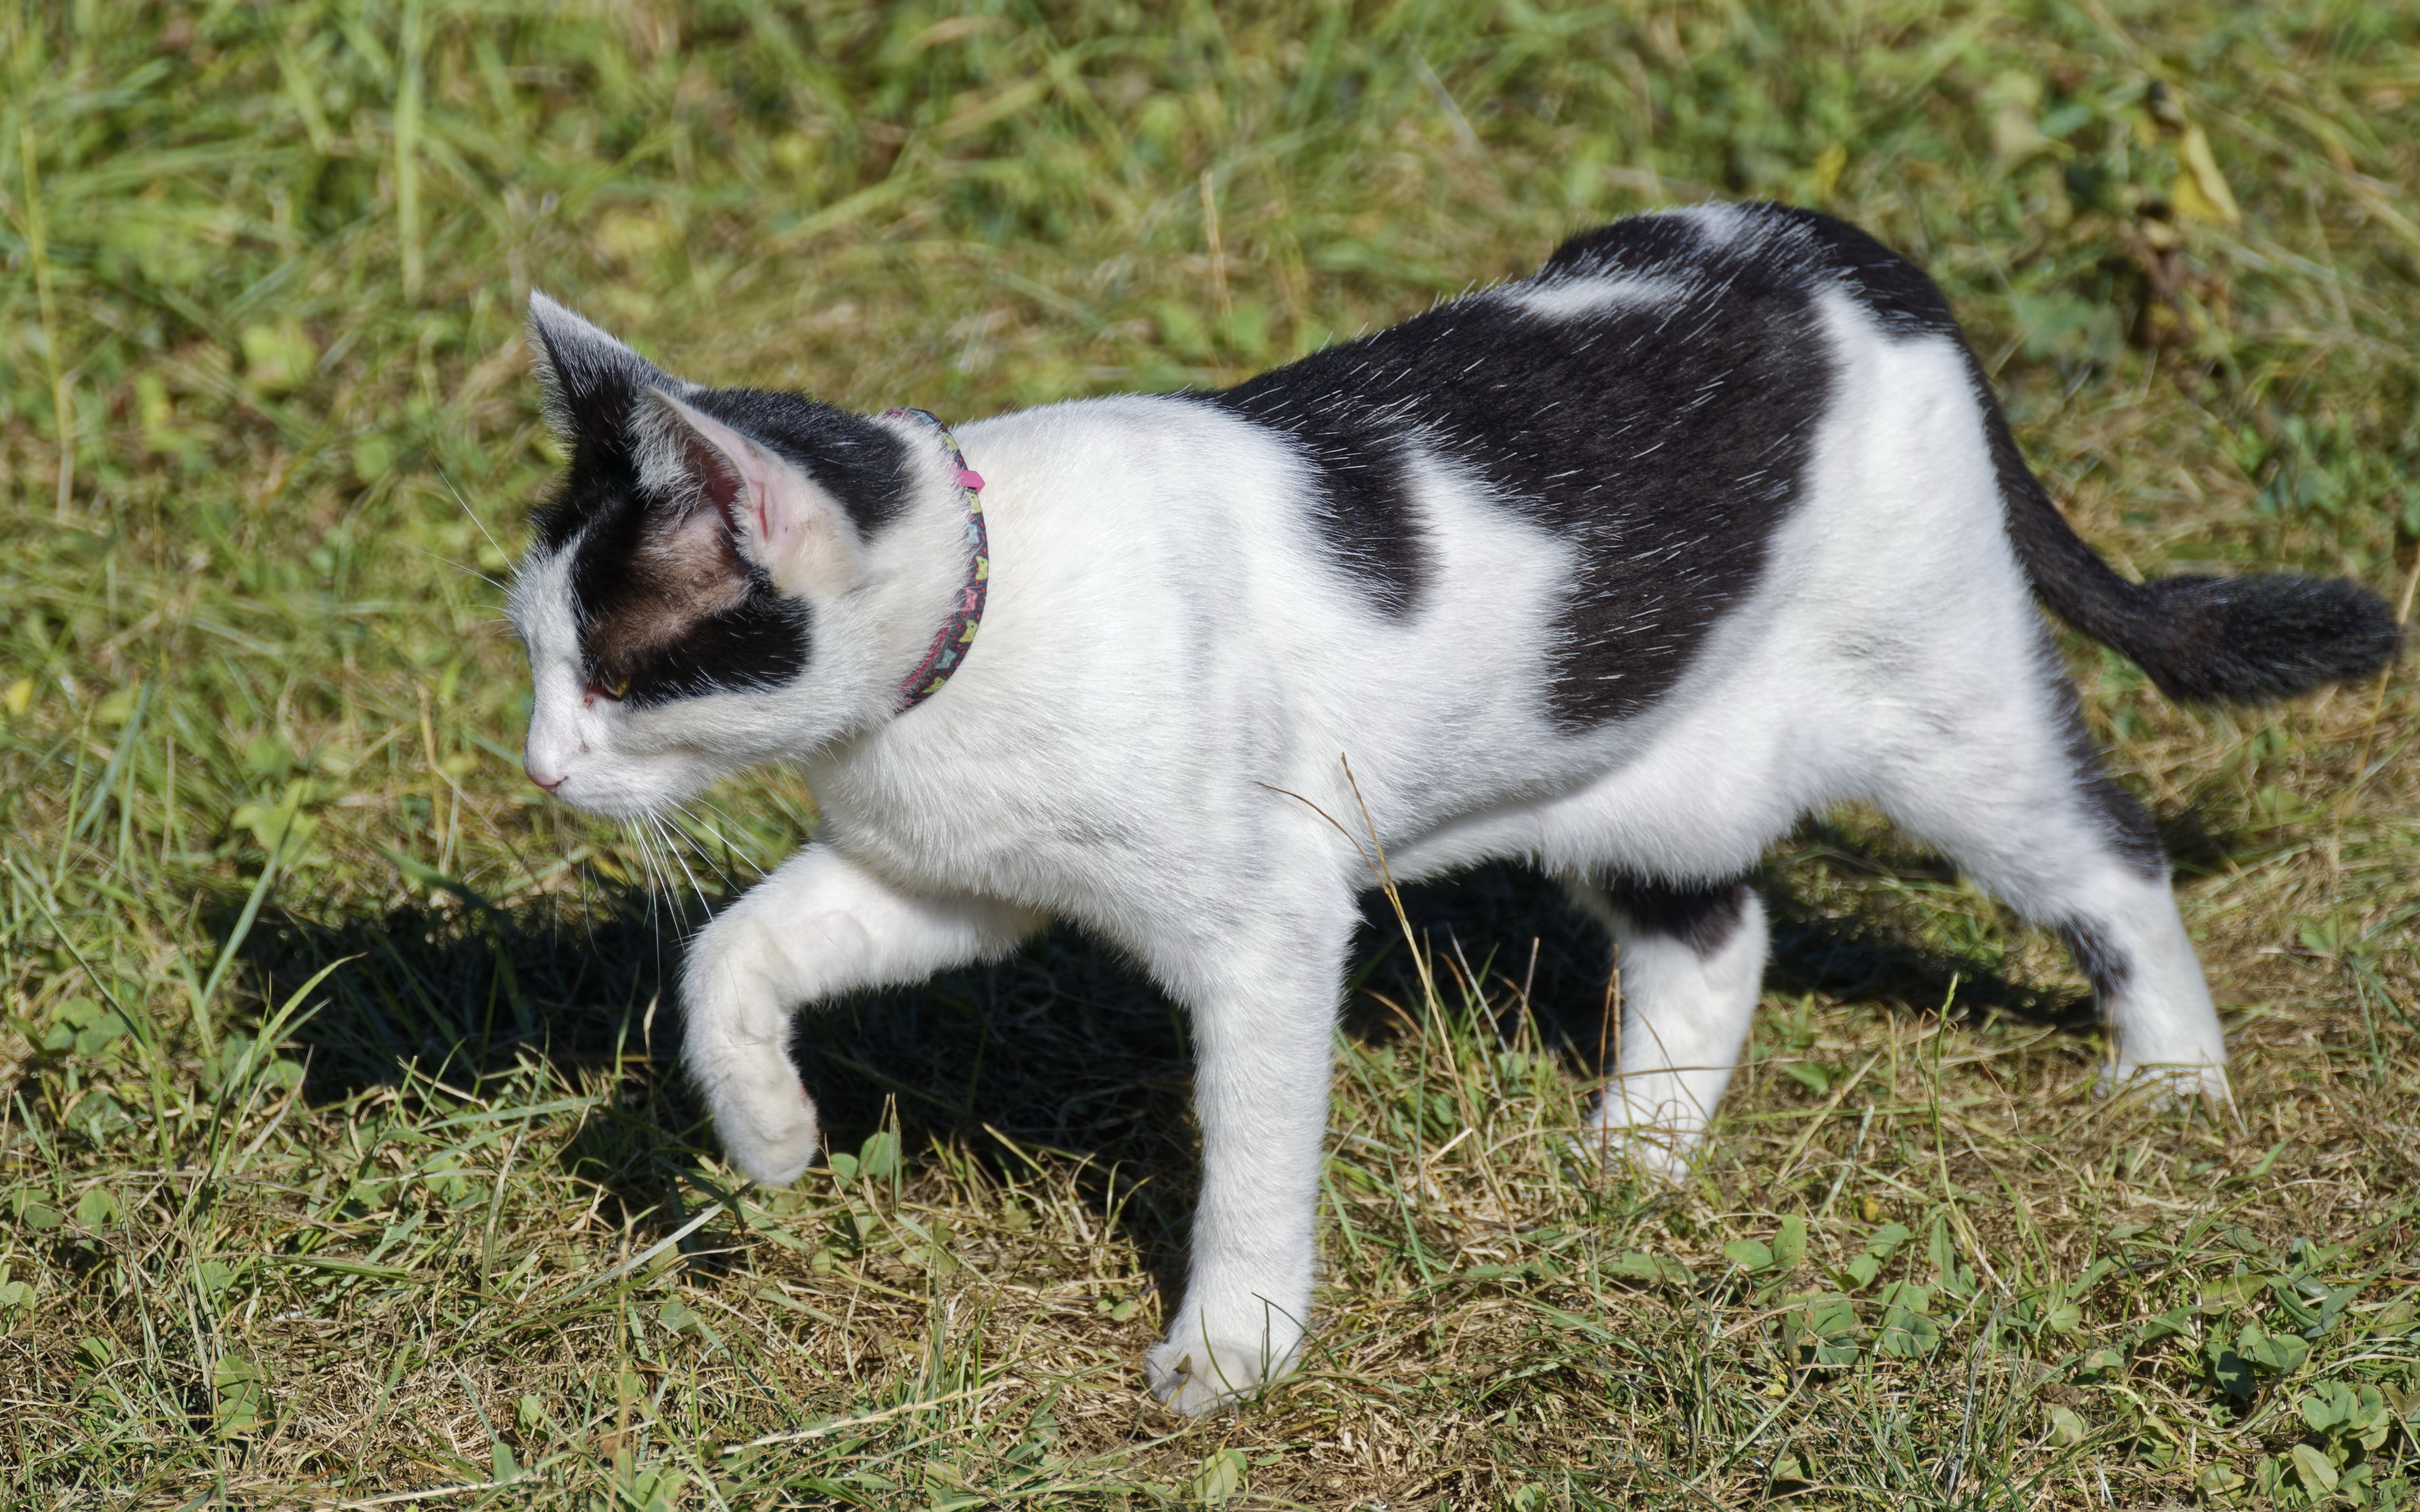 Free stock photo of black and white cat walking on grass